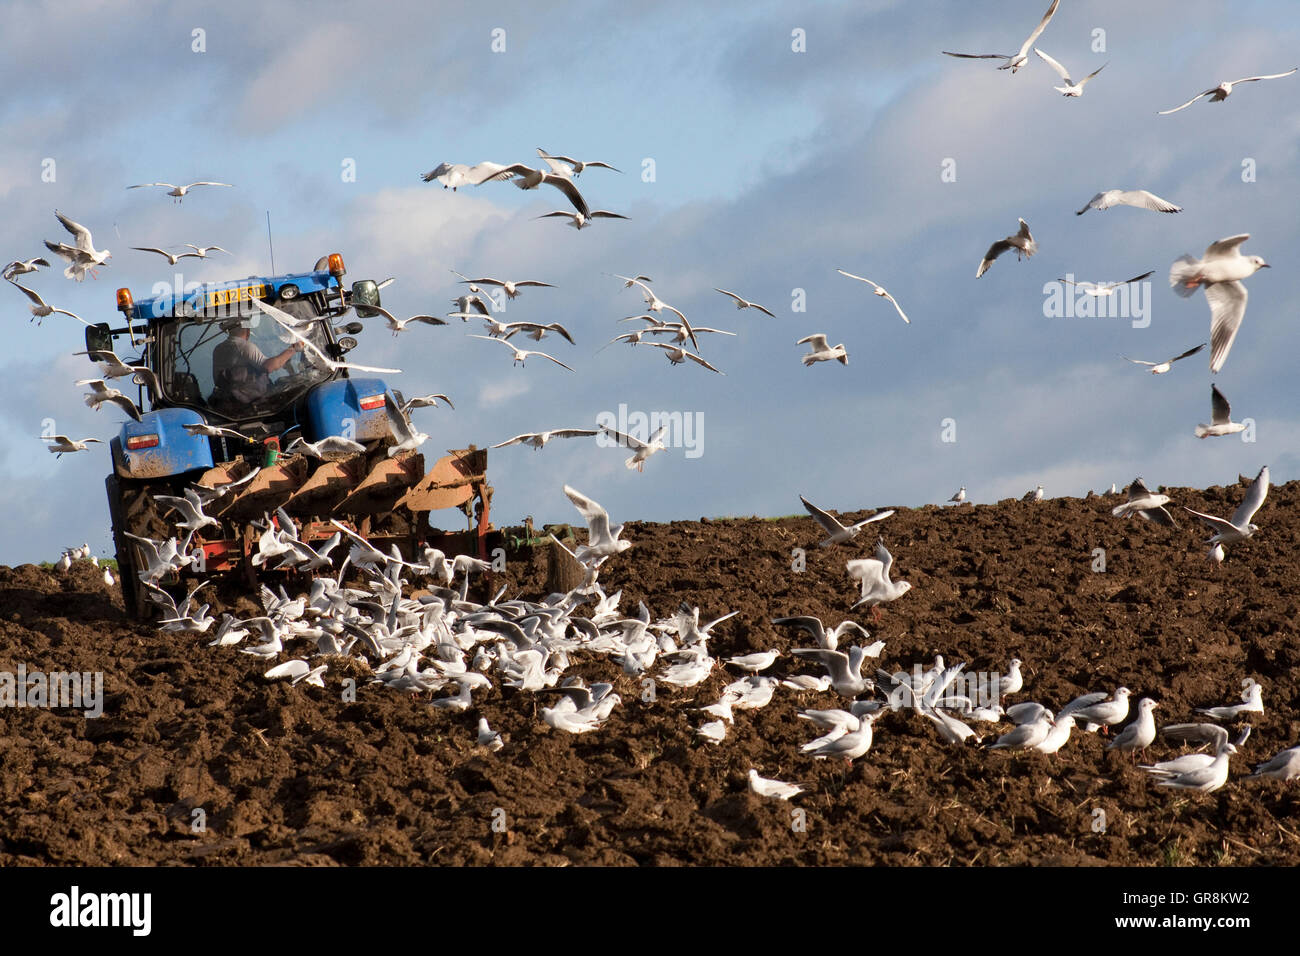 Very traditional scene of seagulls following a ploughing tractor Stock Photo